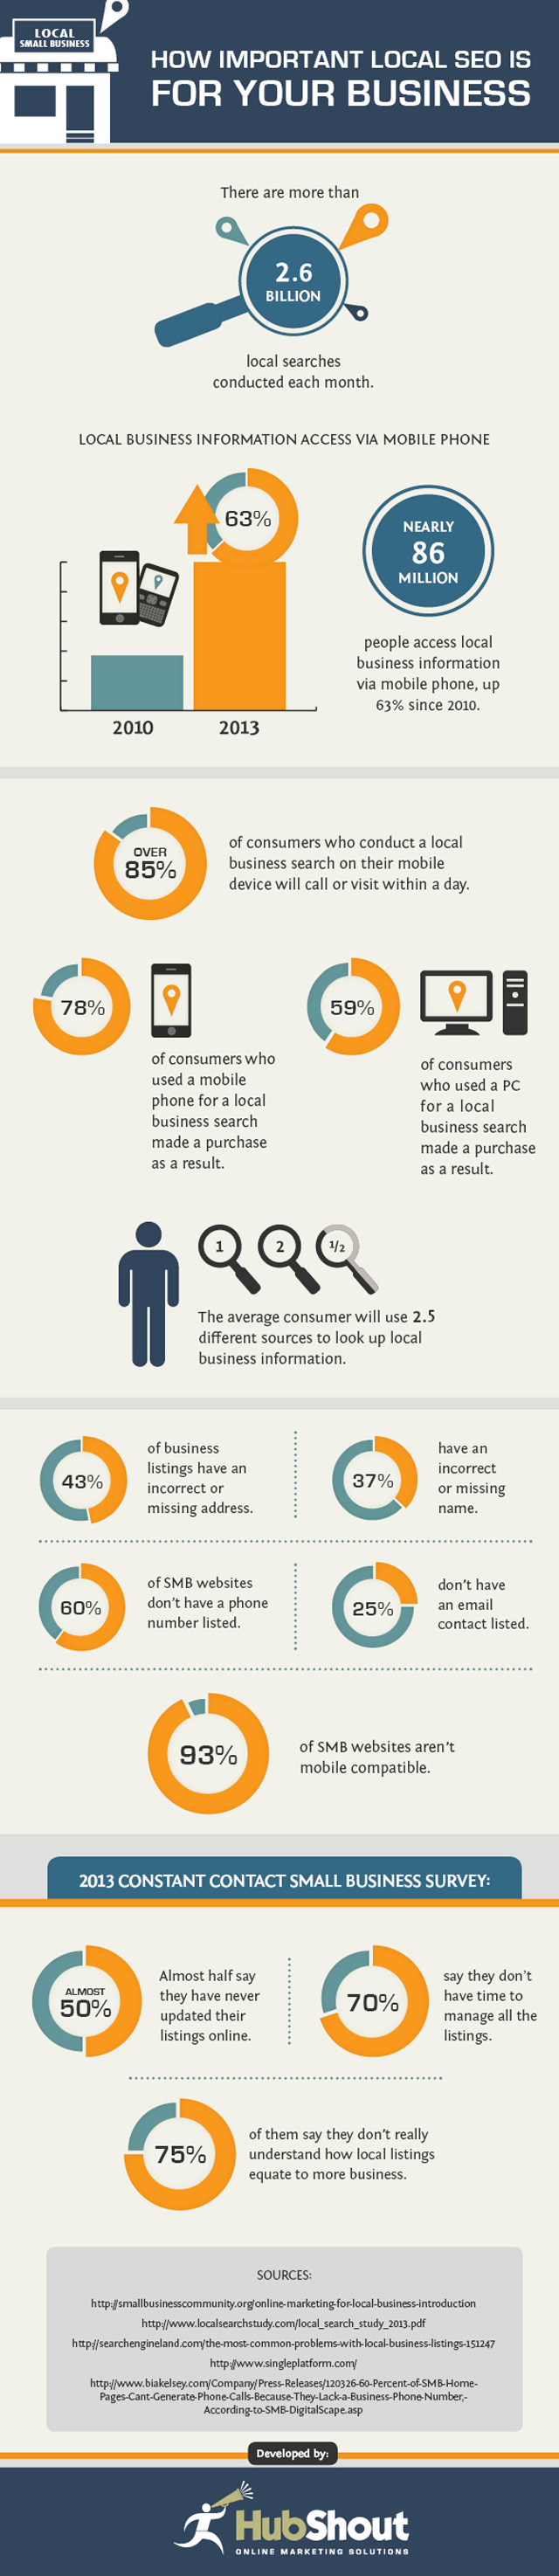 How_important_local_seo_is_for_your_business